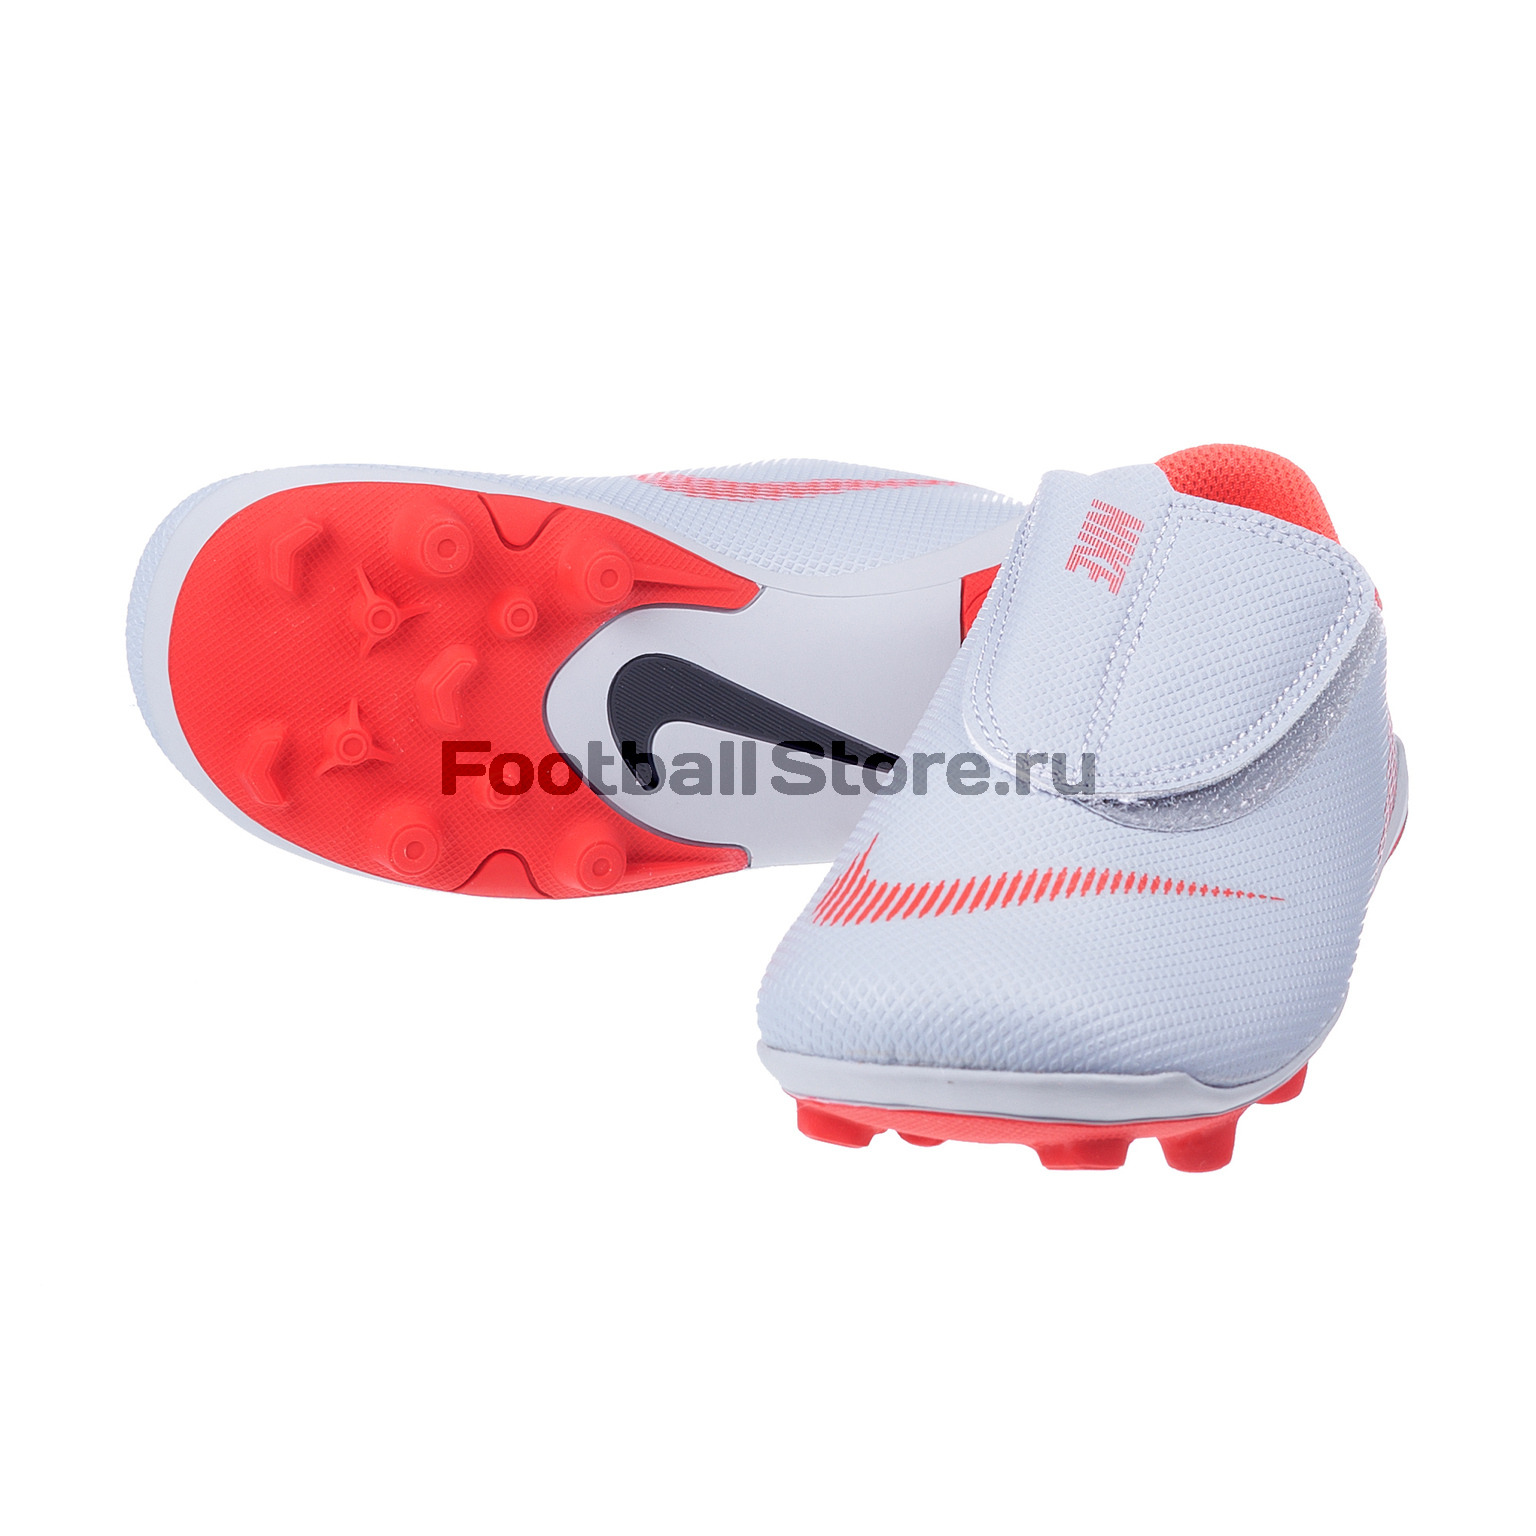 Бутсы детские Nike Vapor 12 Club PS FG/MG AH7351-060 бутсы nike mercurial vapor iii fg cr